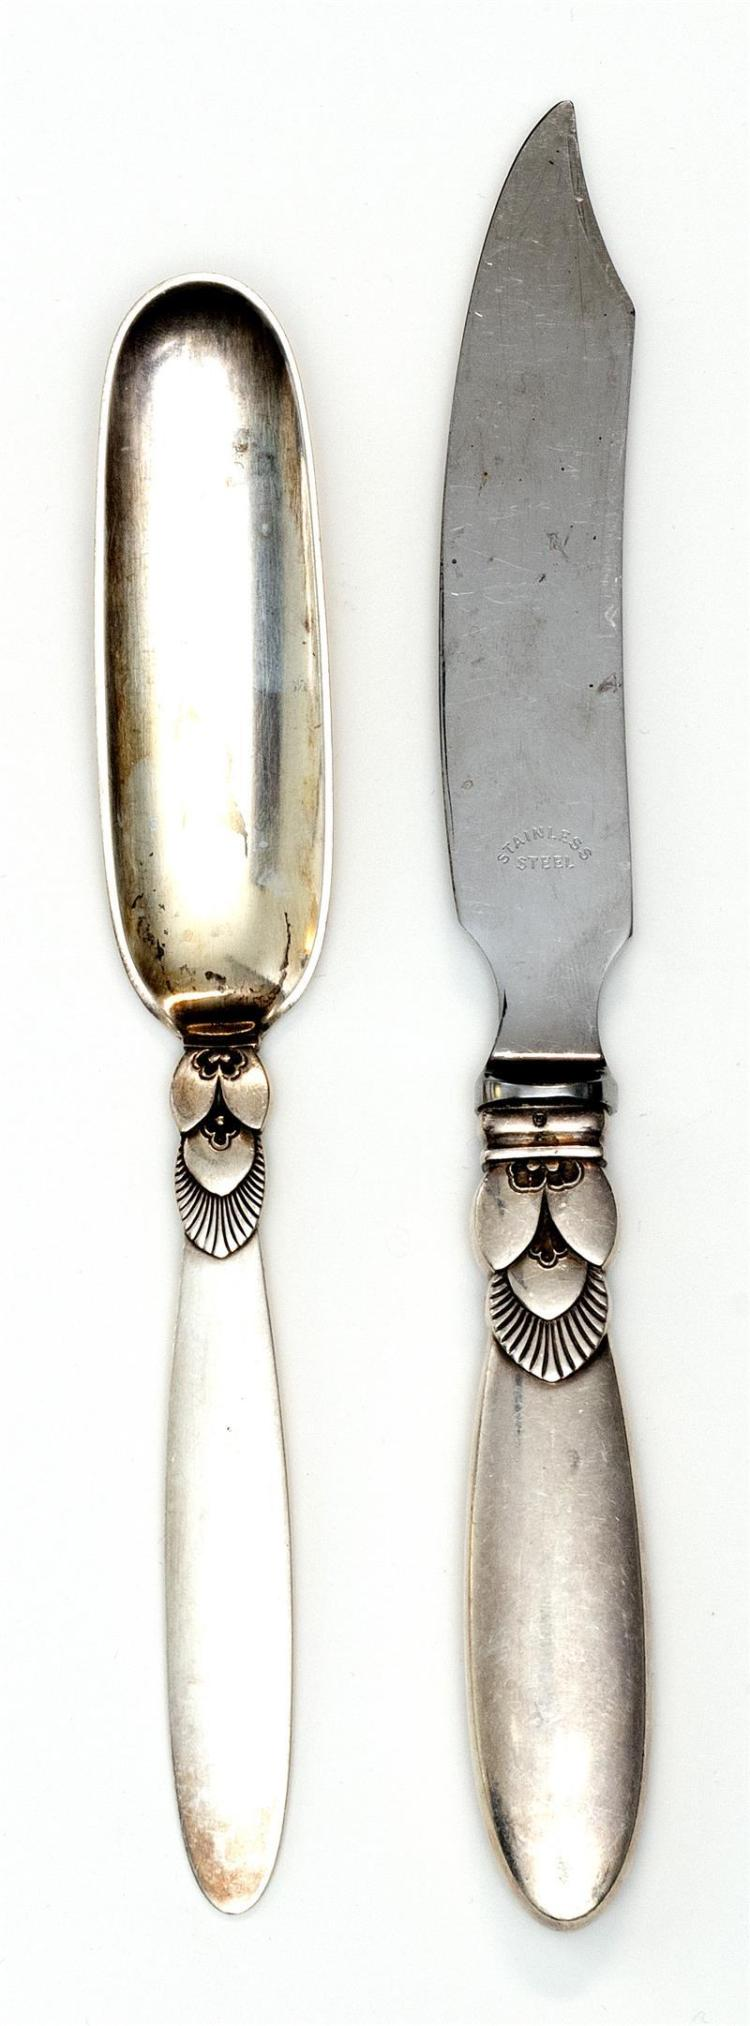 "TWO GEORG JENSEN ""CACTUS"" PATTERN STERLING SILVER FLATWARE PIECES A cheese scoop, length 7"", and an individual fish knife with hollo..."